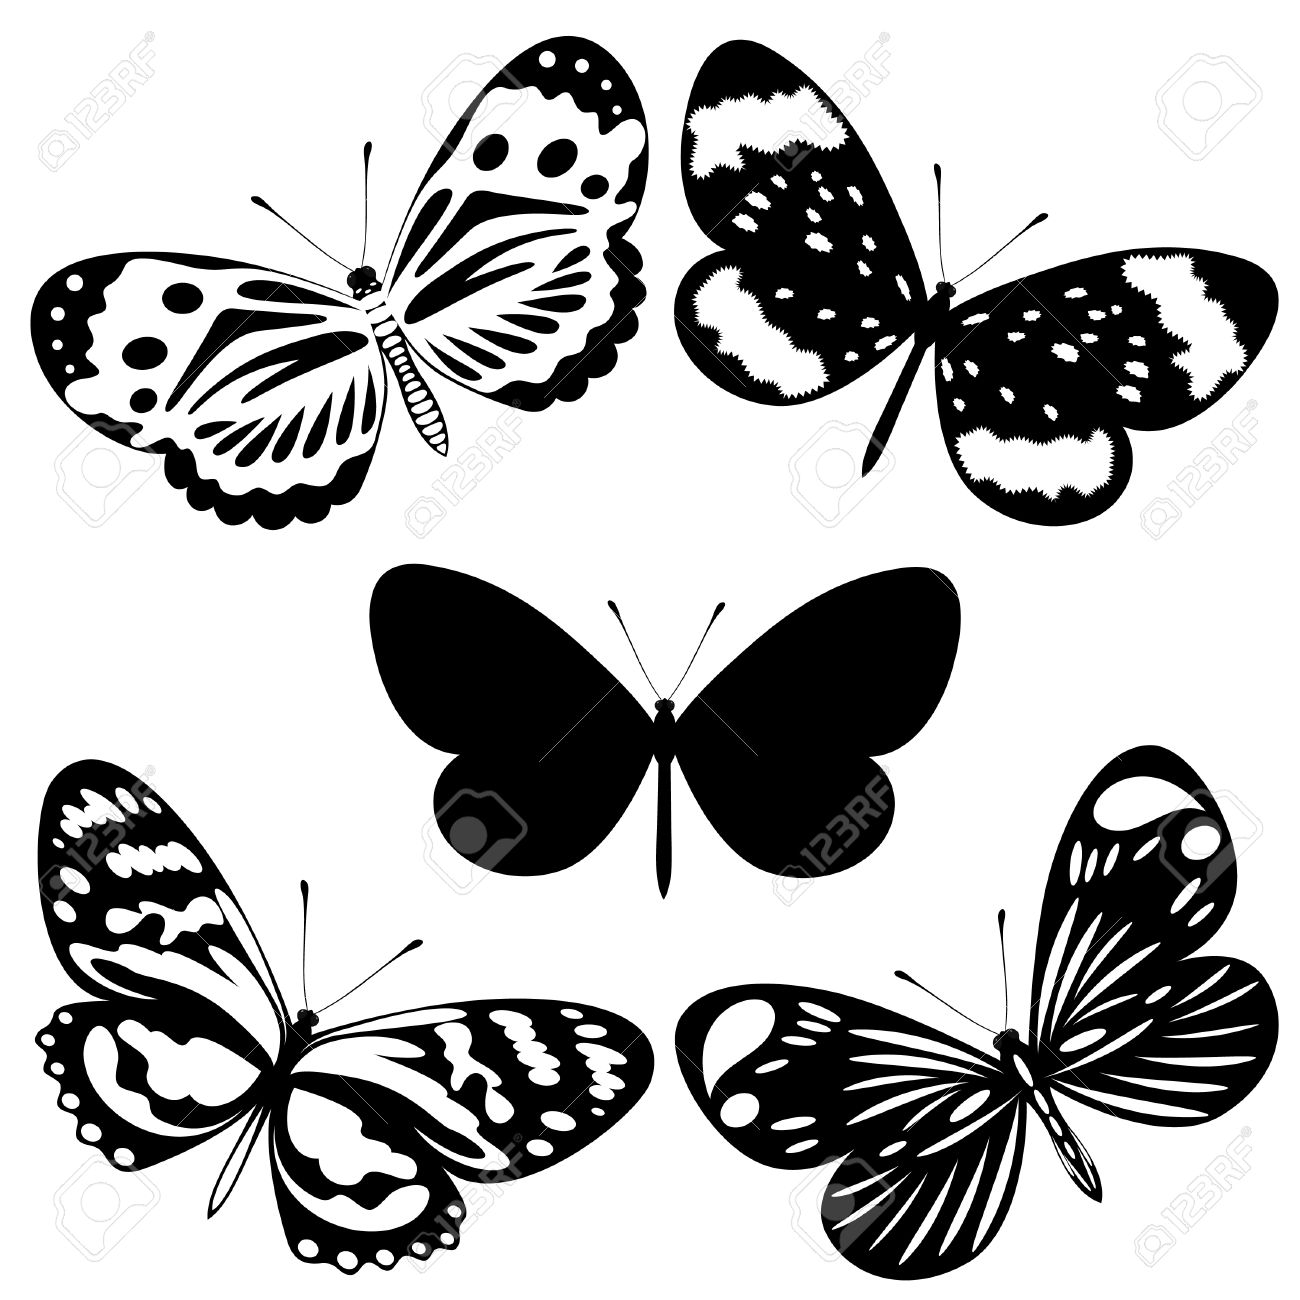 1300x1300 Dongetrabi Black And White Butterfly Drawing Images